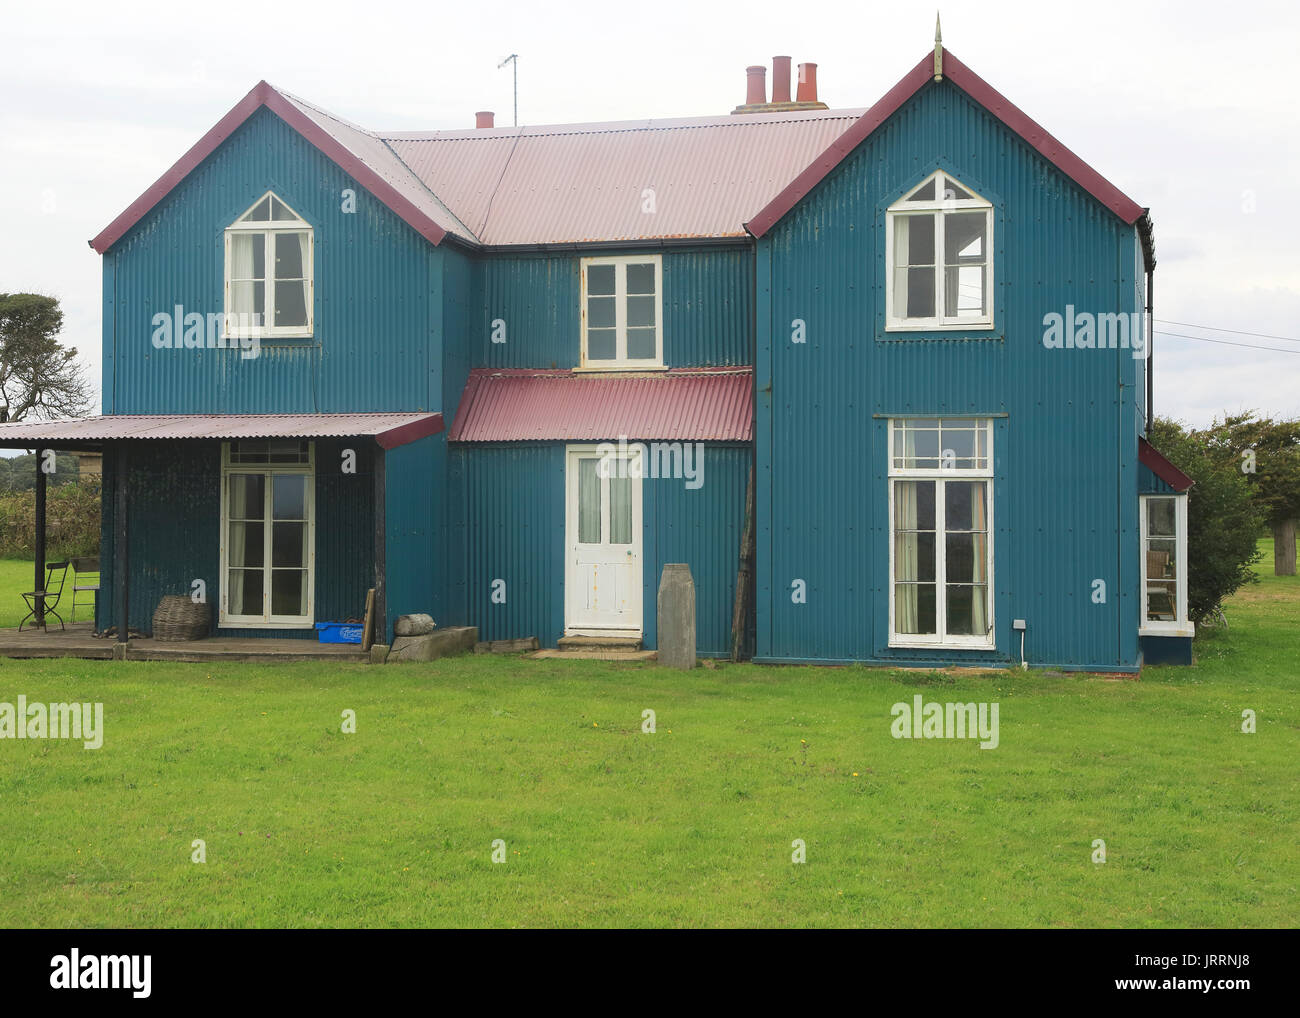 Corrugated Iron House High Resolution Stock Photography And Images Alamy